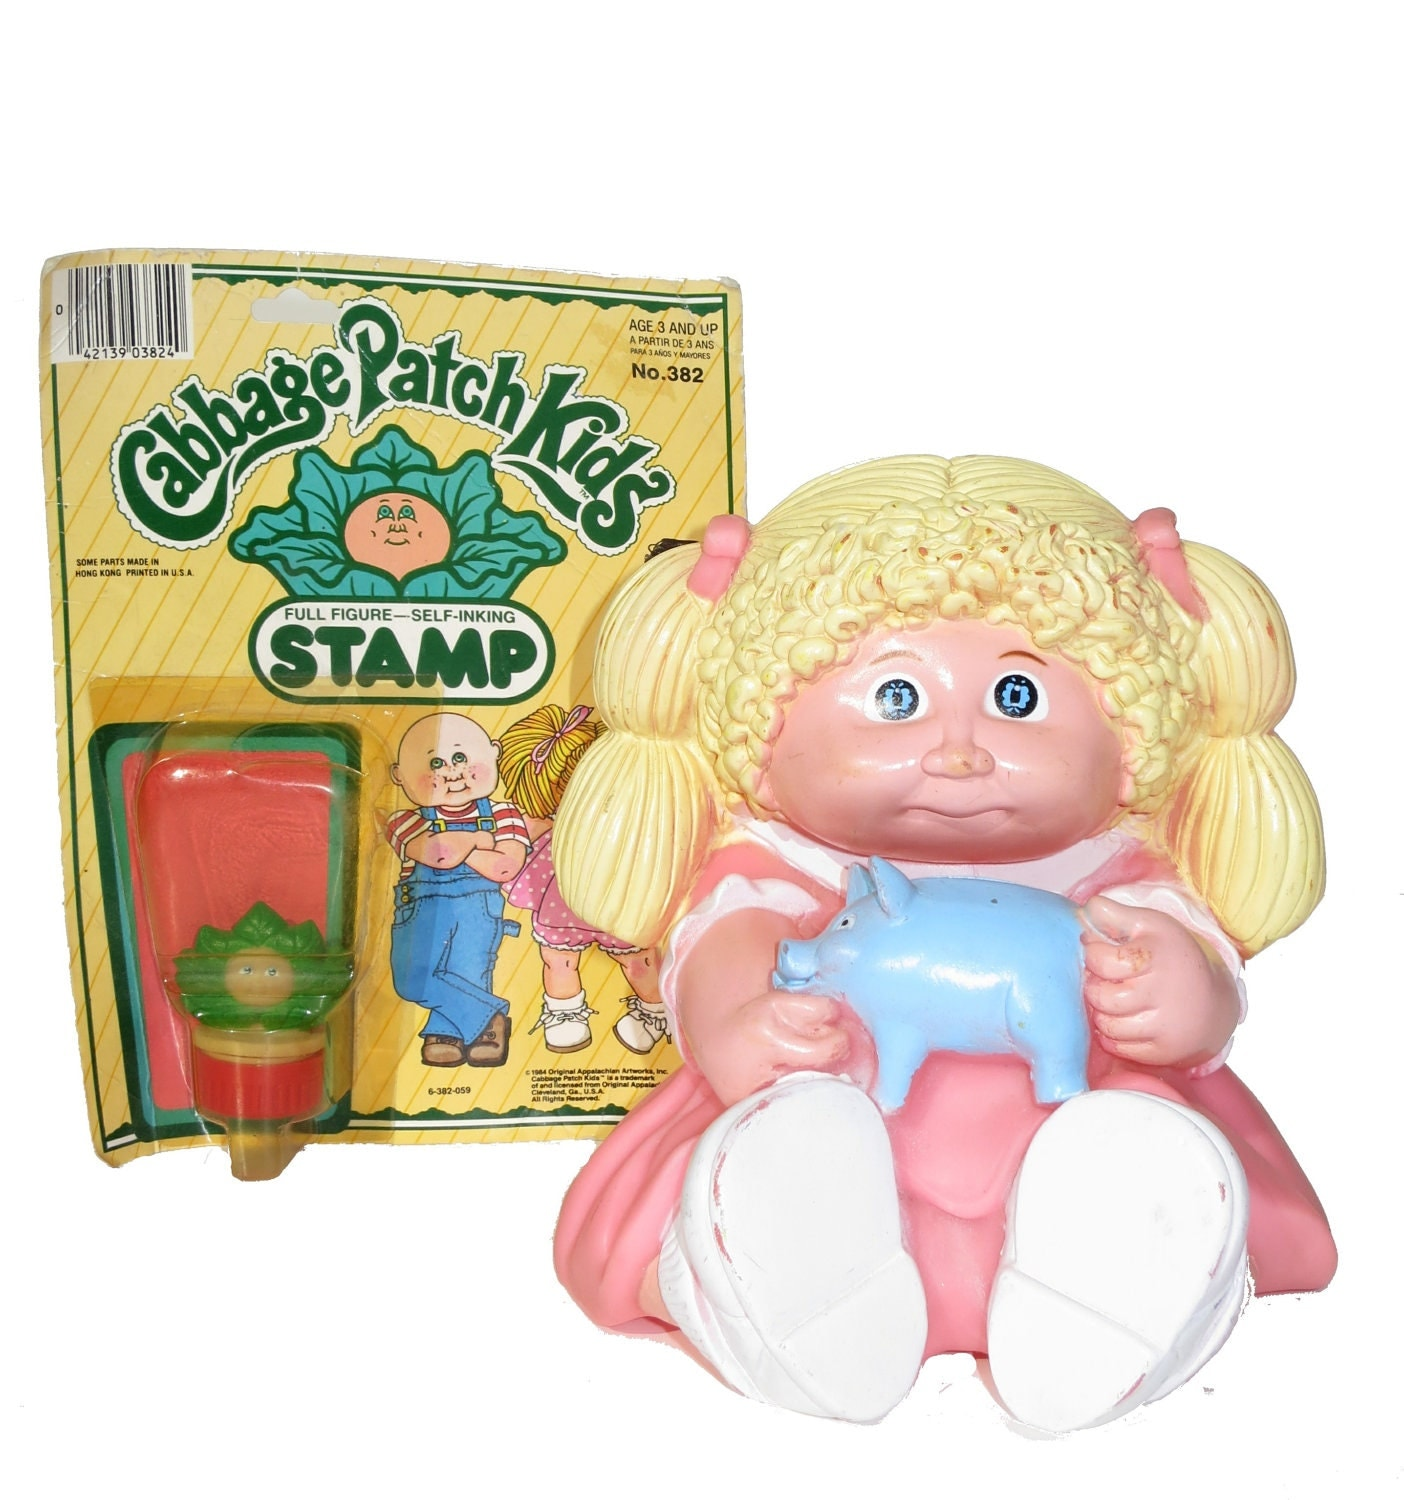 1984 Toys For Girls : Vintage s cabbage patch kids bank and stamp retro